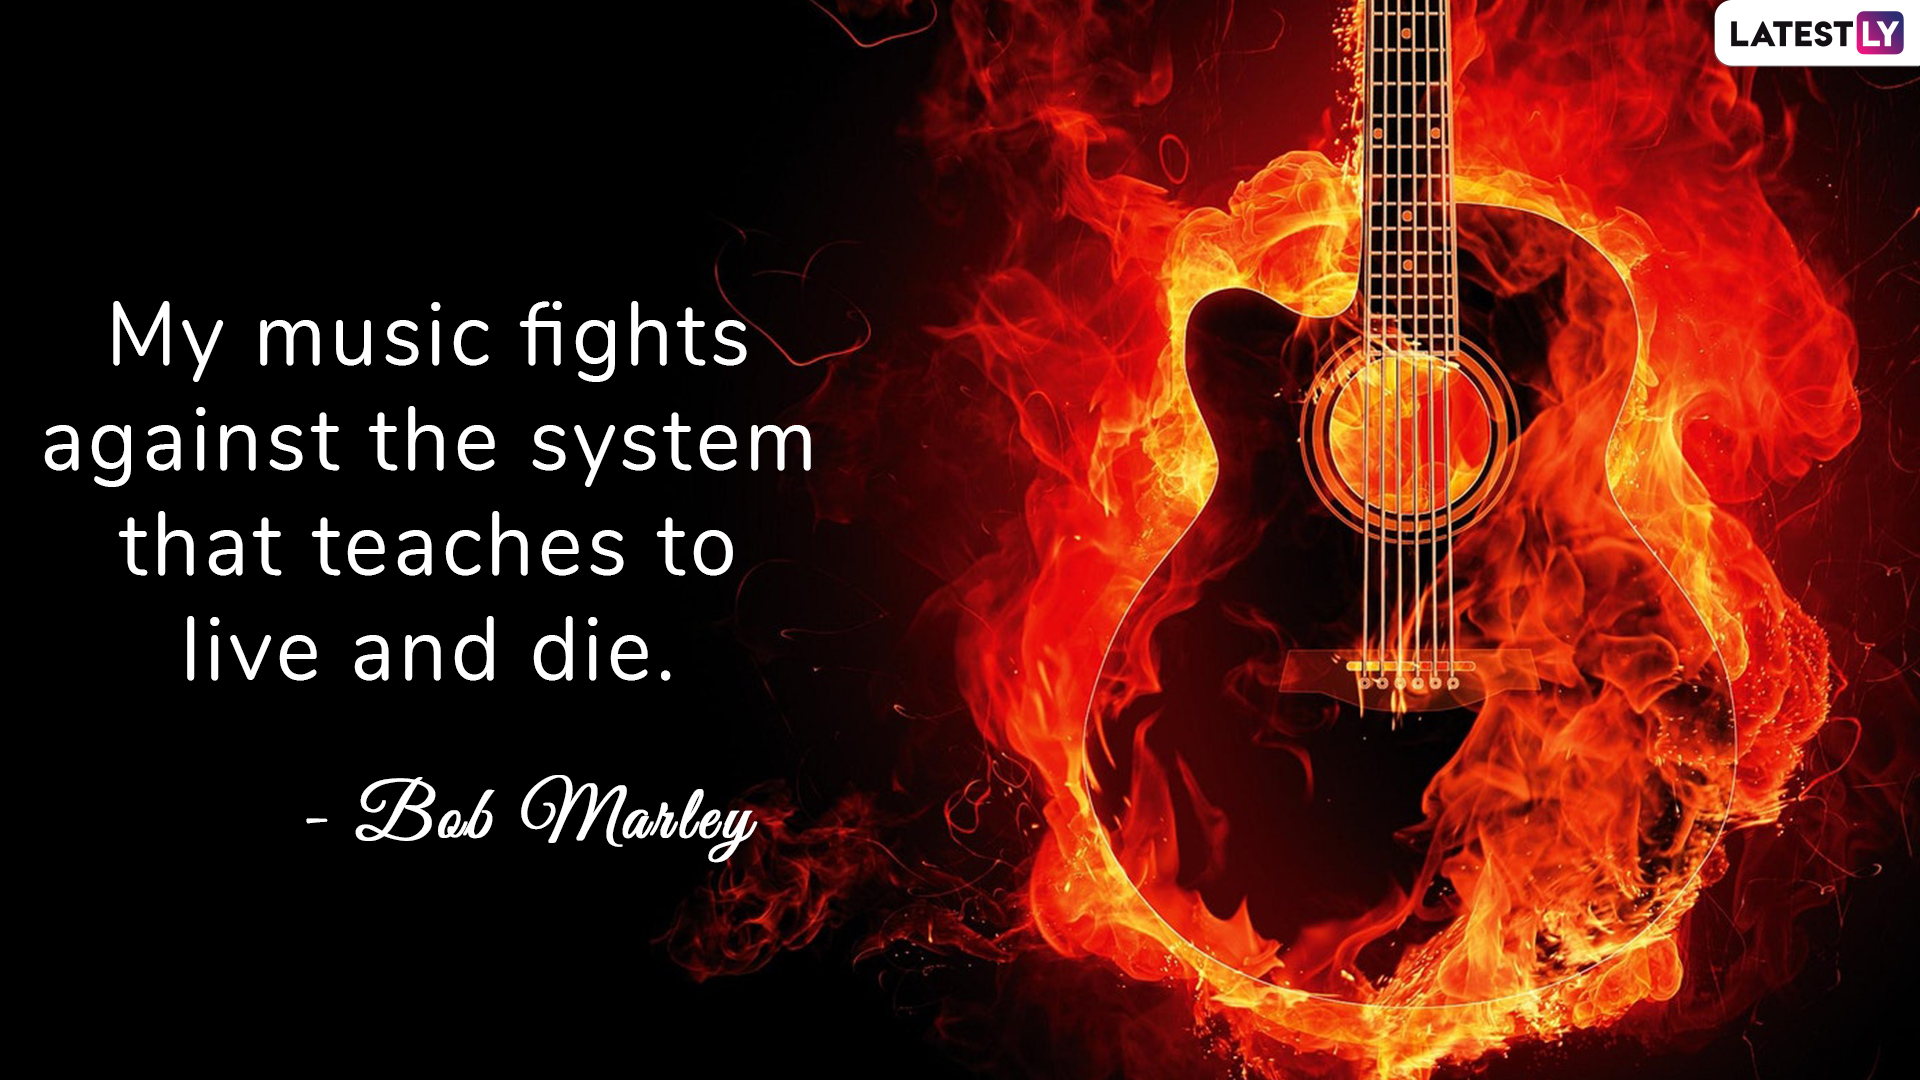 Bob Marley's quote on music to celebrate World Music Day 2019 (Photo Credits: File Image)